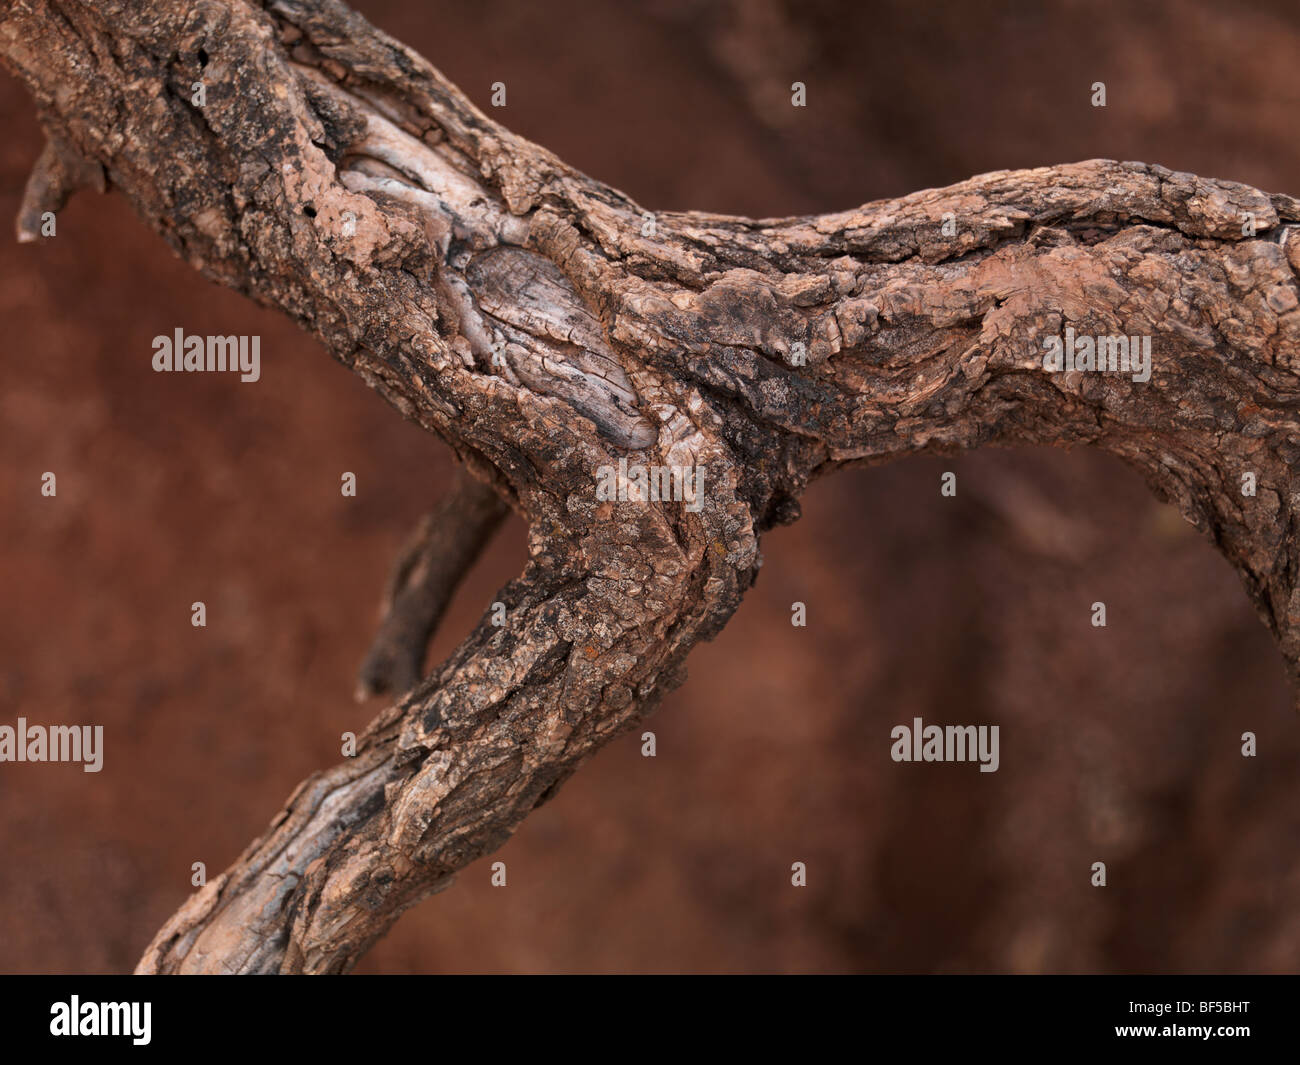 Closeup of curled tree roots sticking out of dry eroded red soil - Stock Image